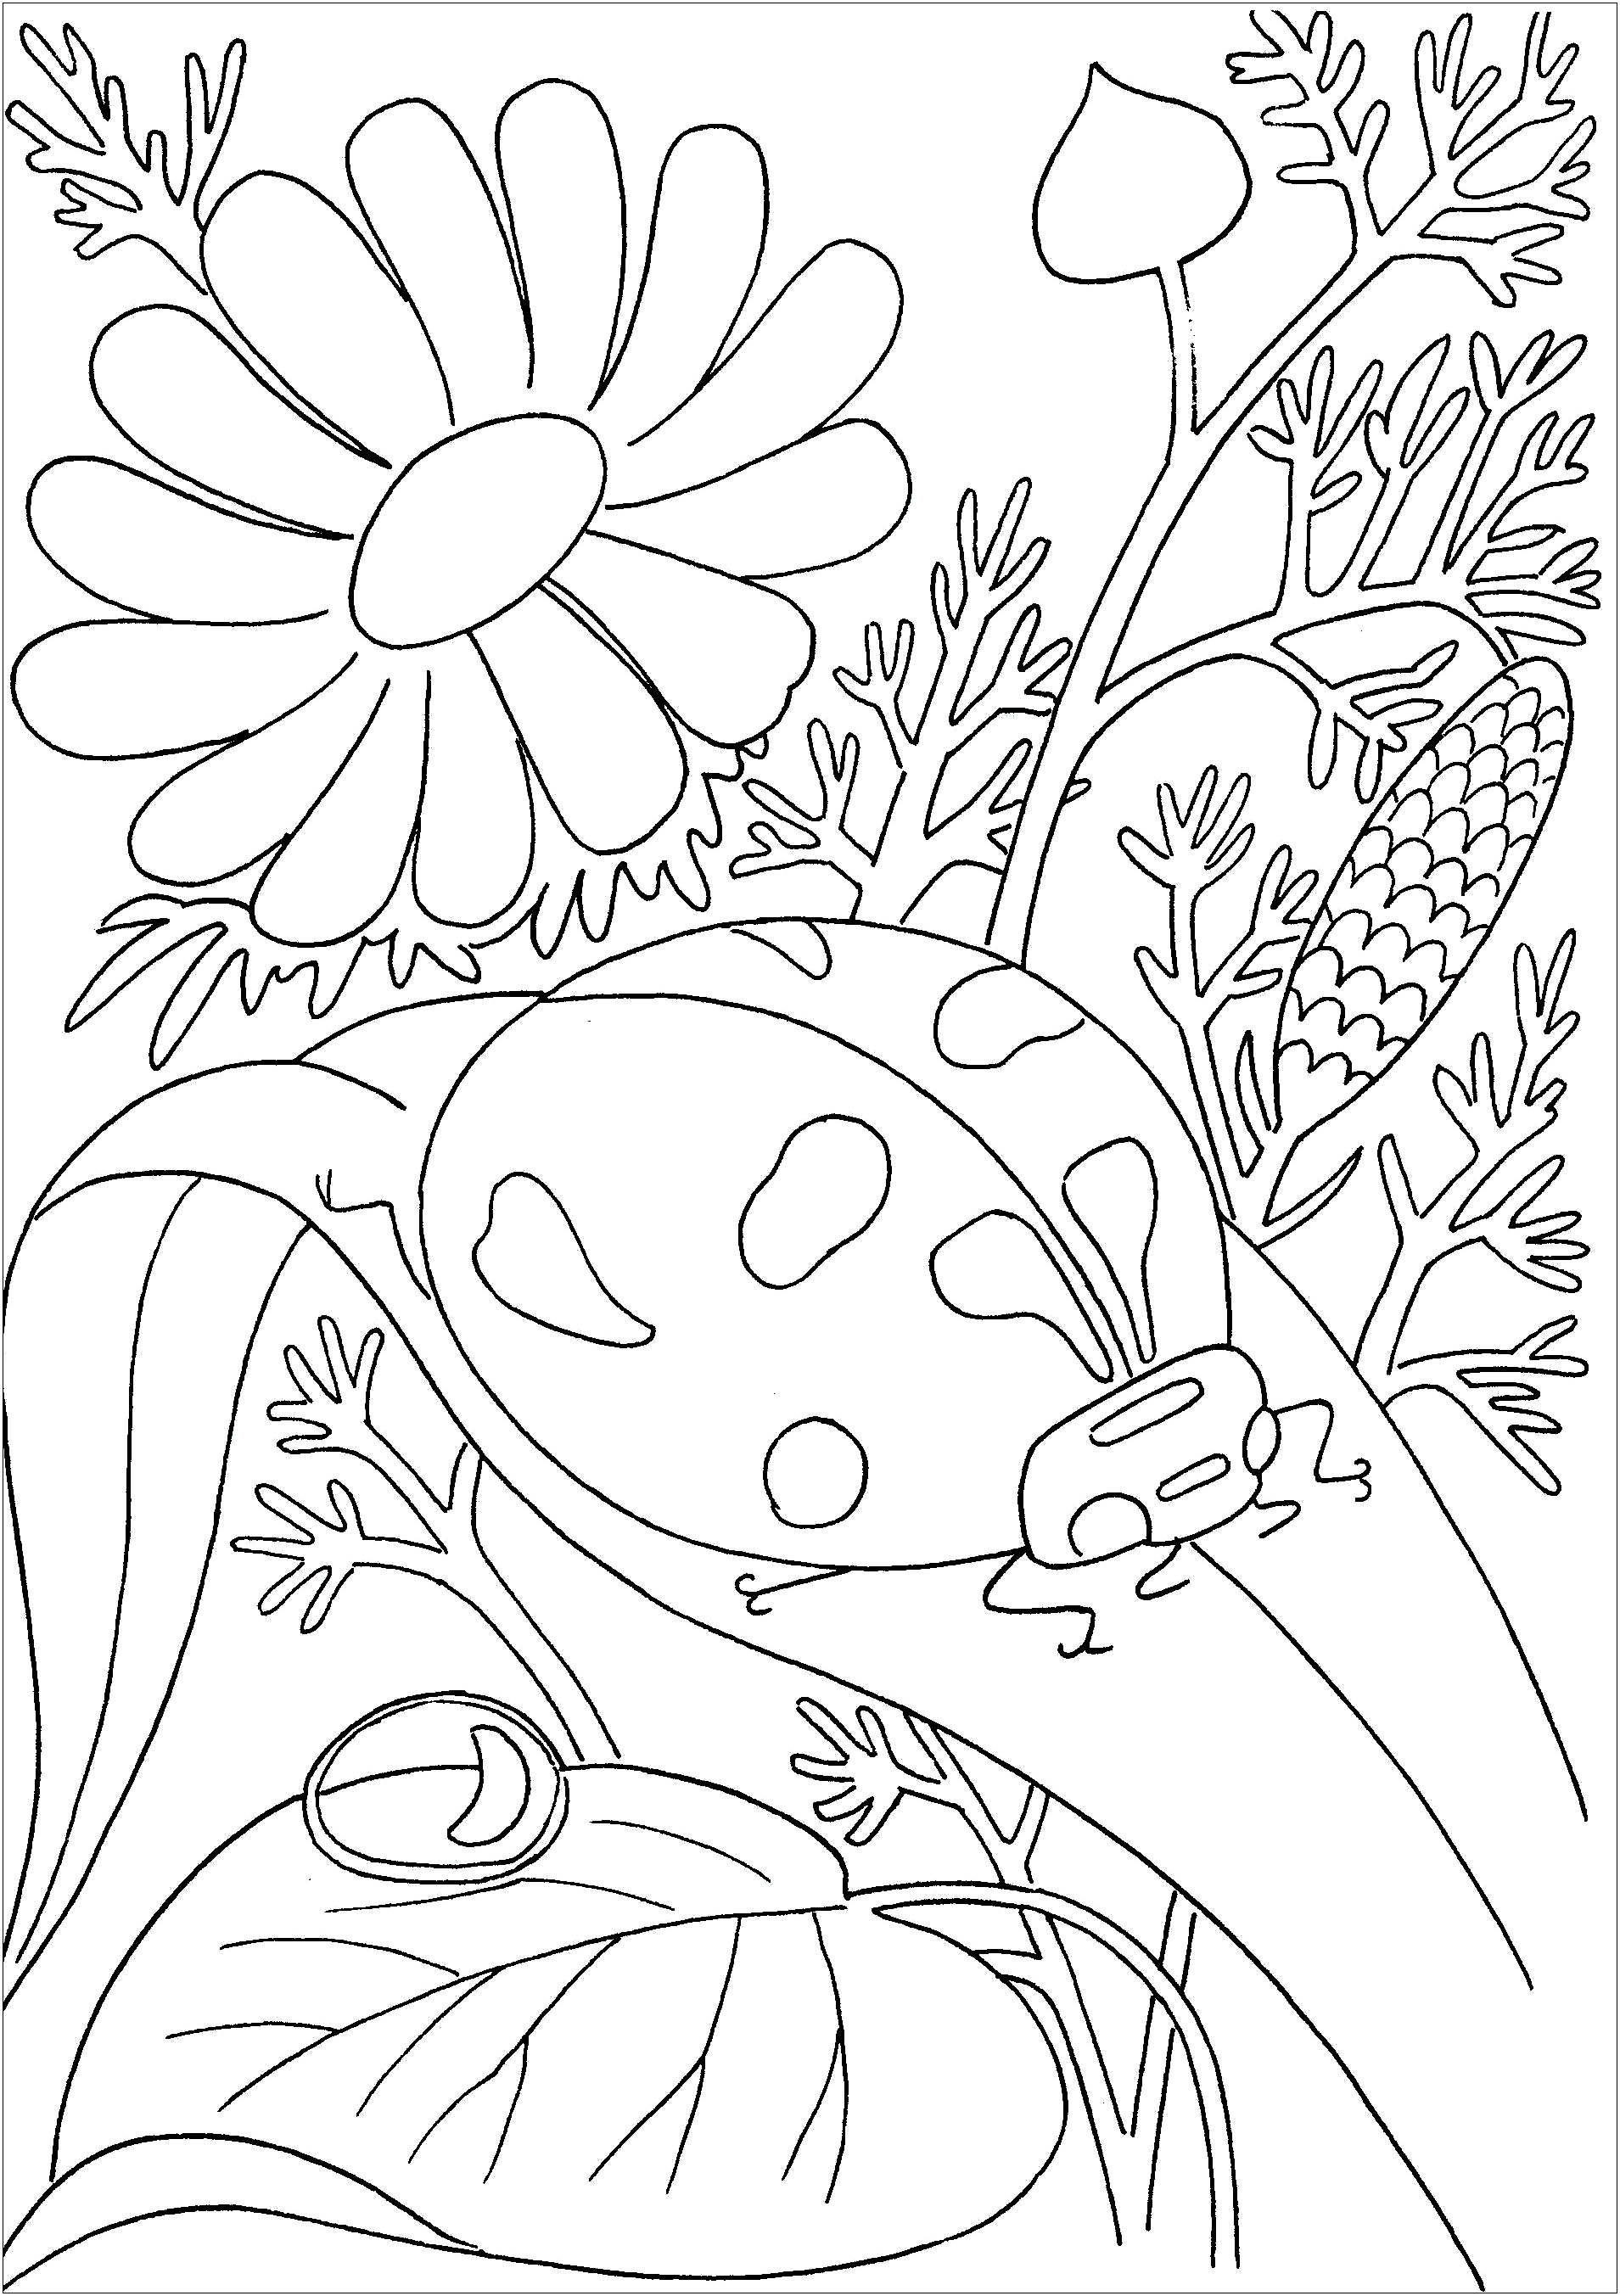 insect coloring sheets insects for kids insects kids coloring pages sheets insect coloring